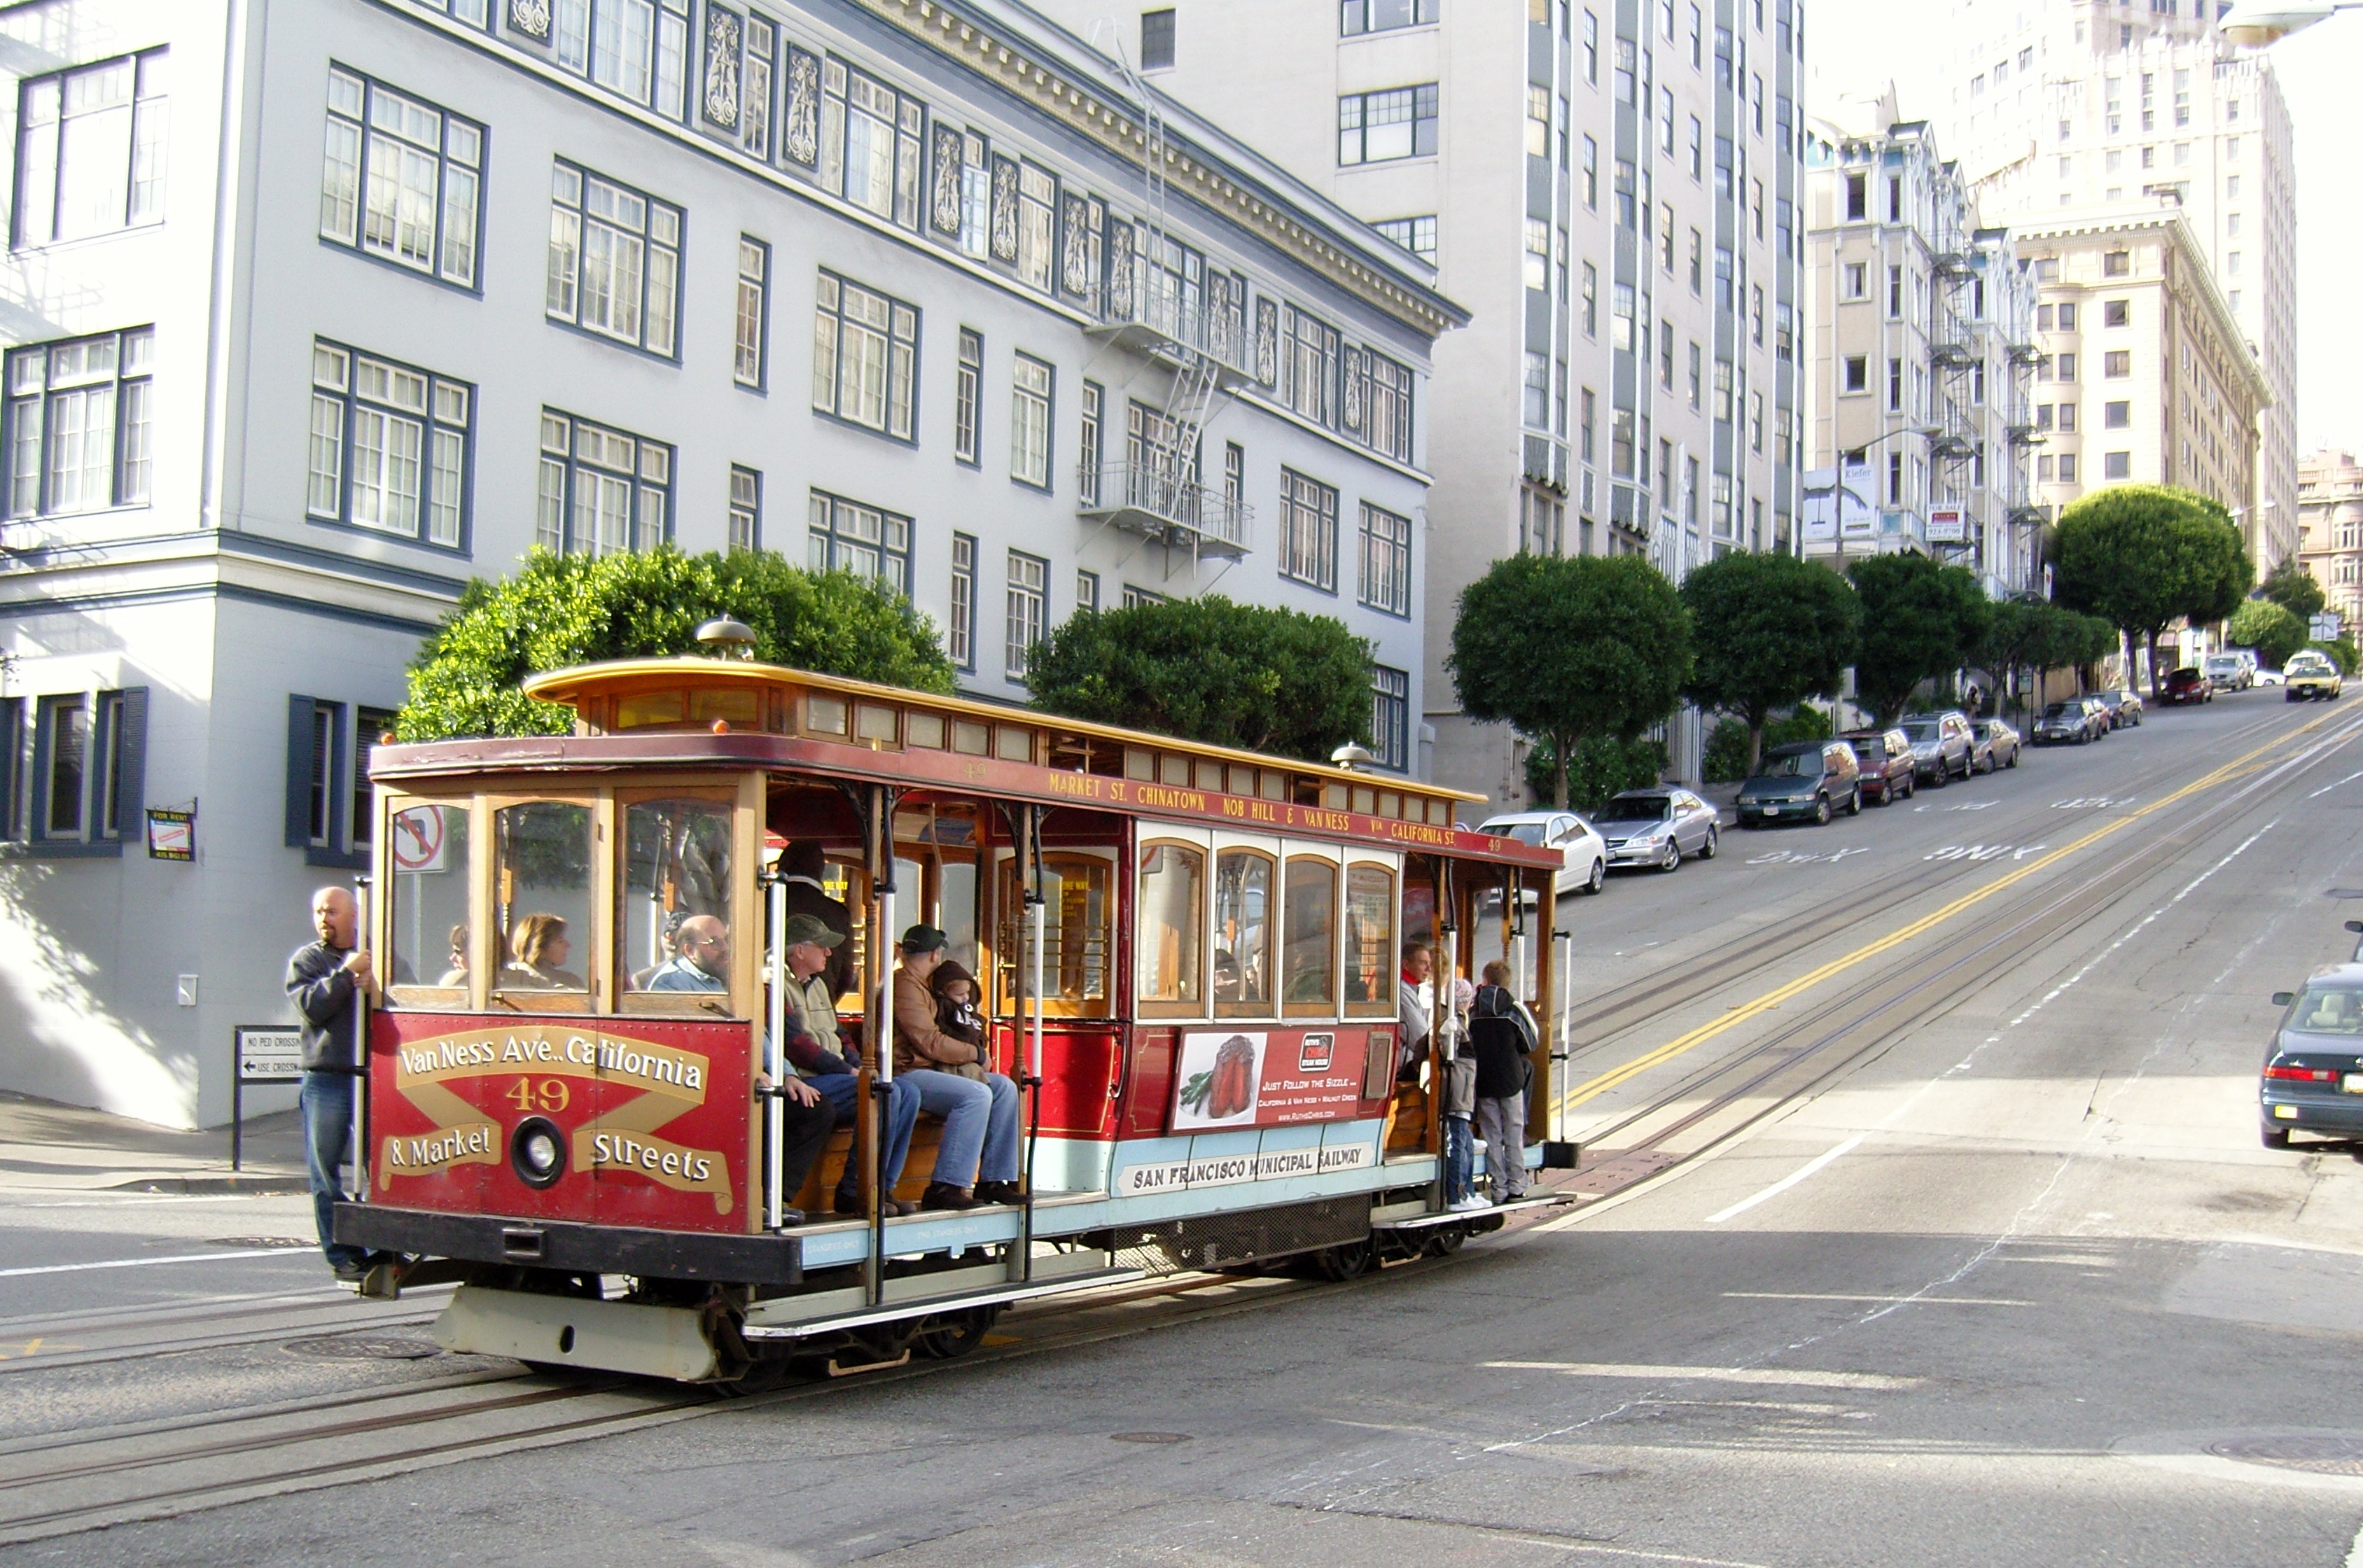 Yes, this is the famous San Franciscan train.